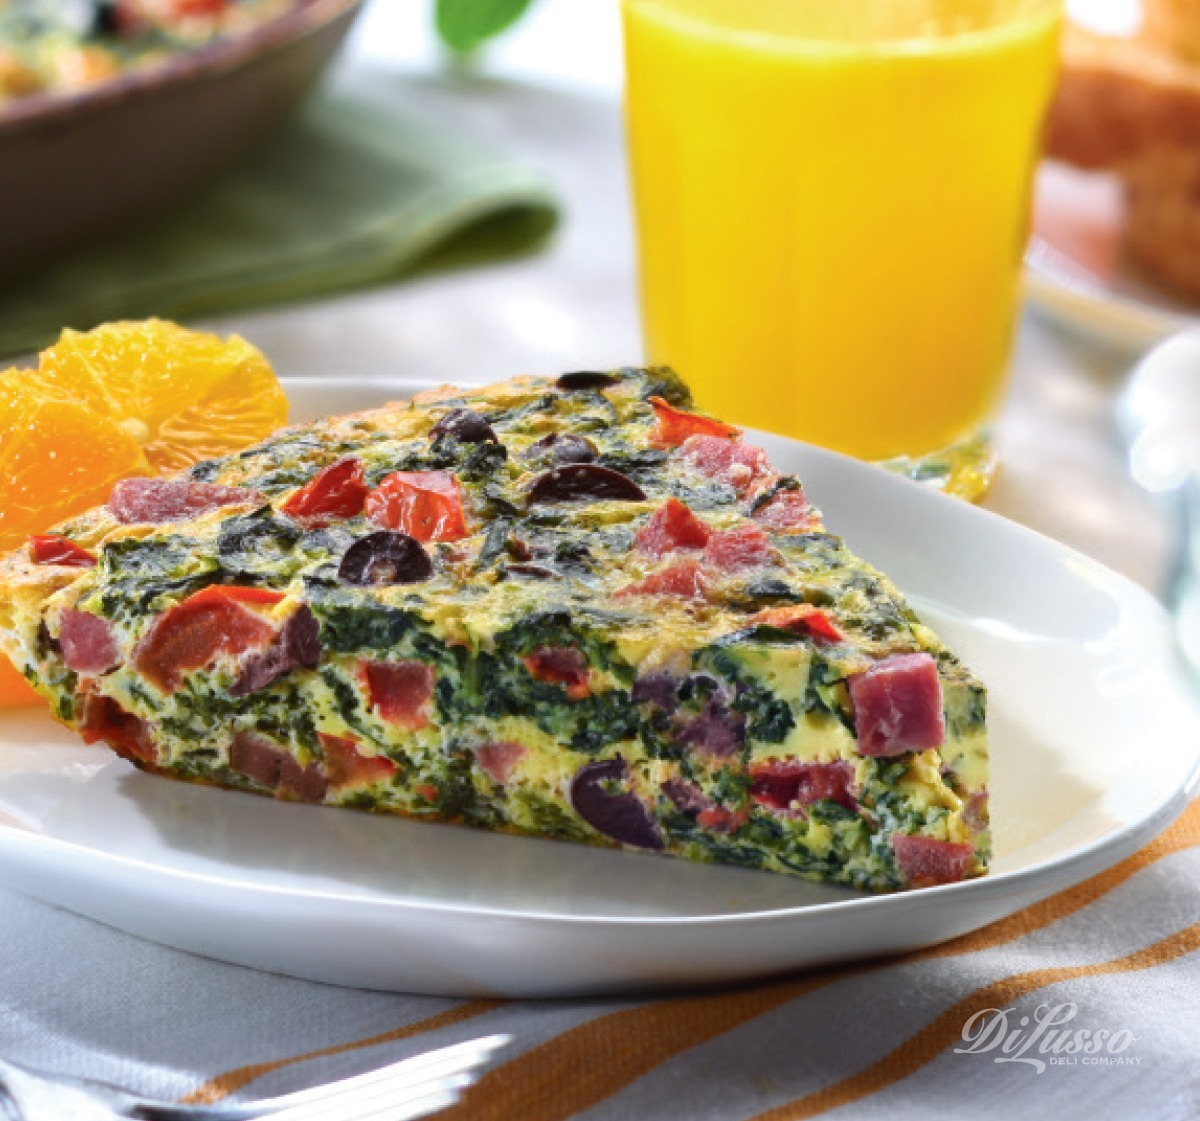 DiLusso_Easter_frittata